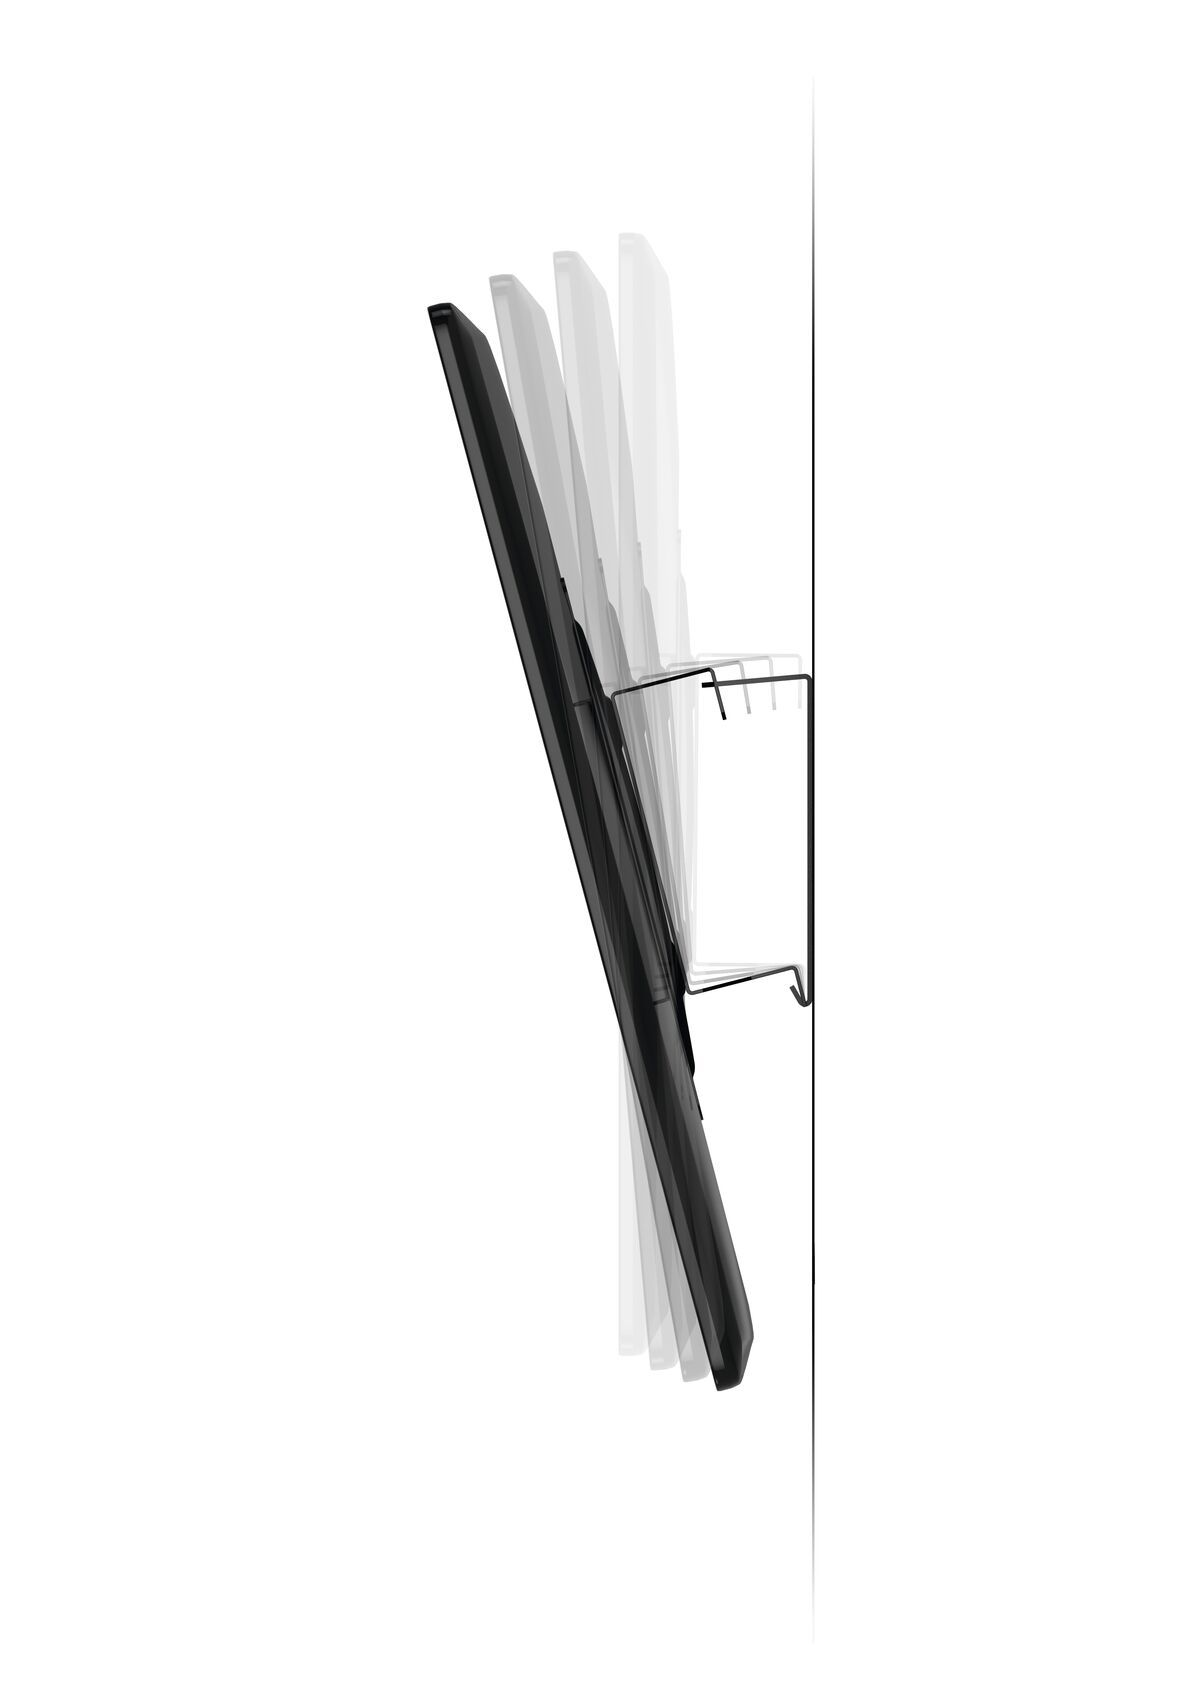 Vogel's MA 2010 (A1) Tilting TV Wall Mount - Suitable for 19 up to 40 inch TVs up to 30 kg - Tilt up to 15° - Side view